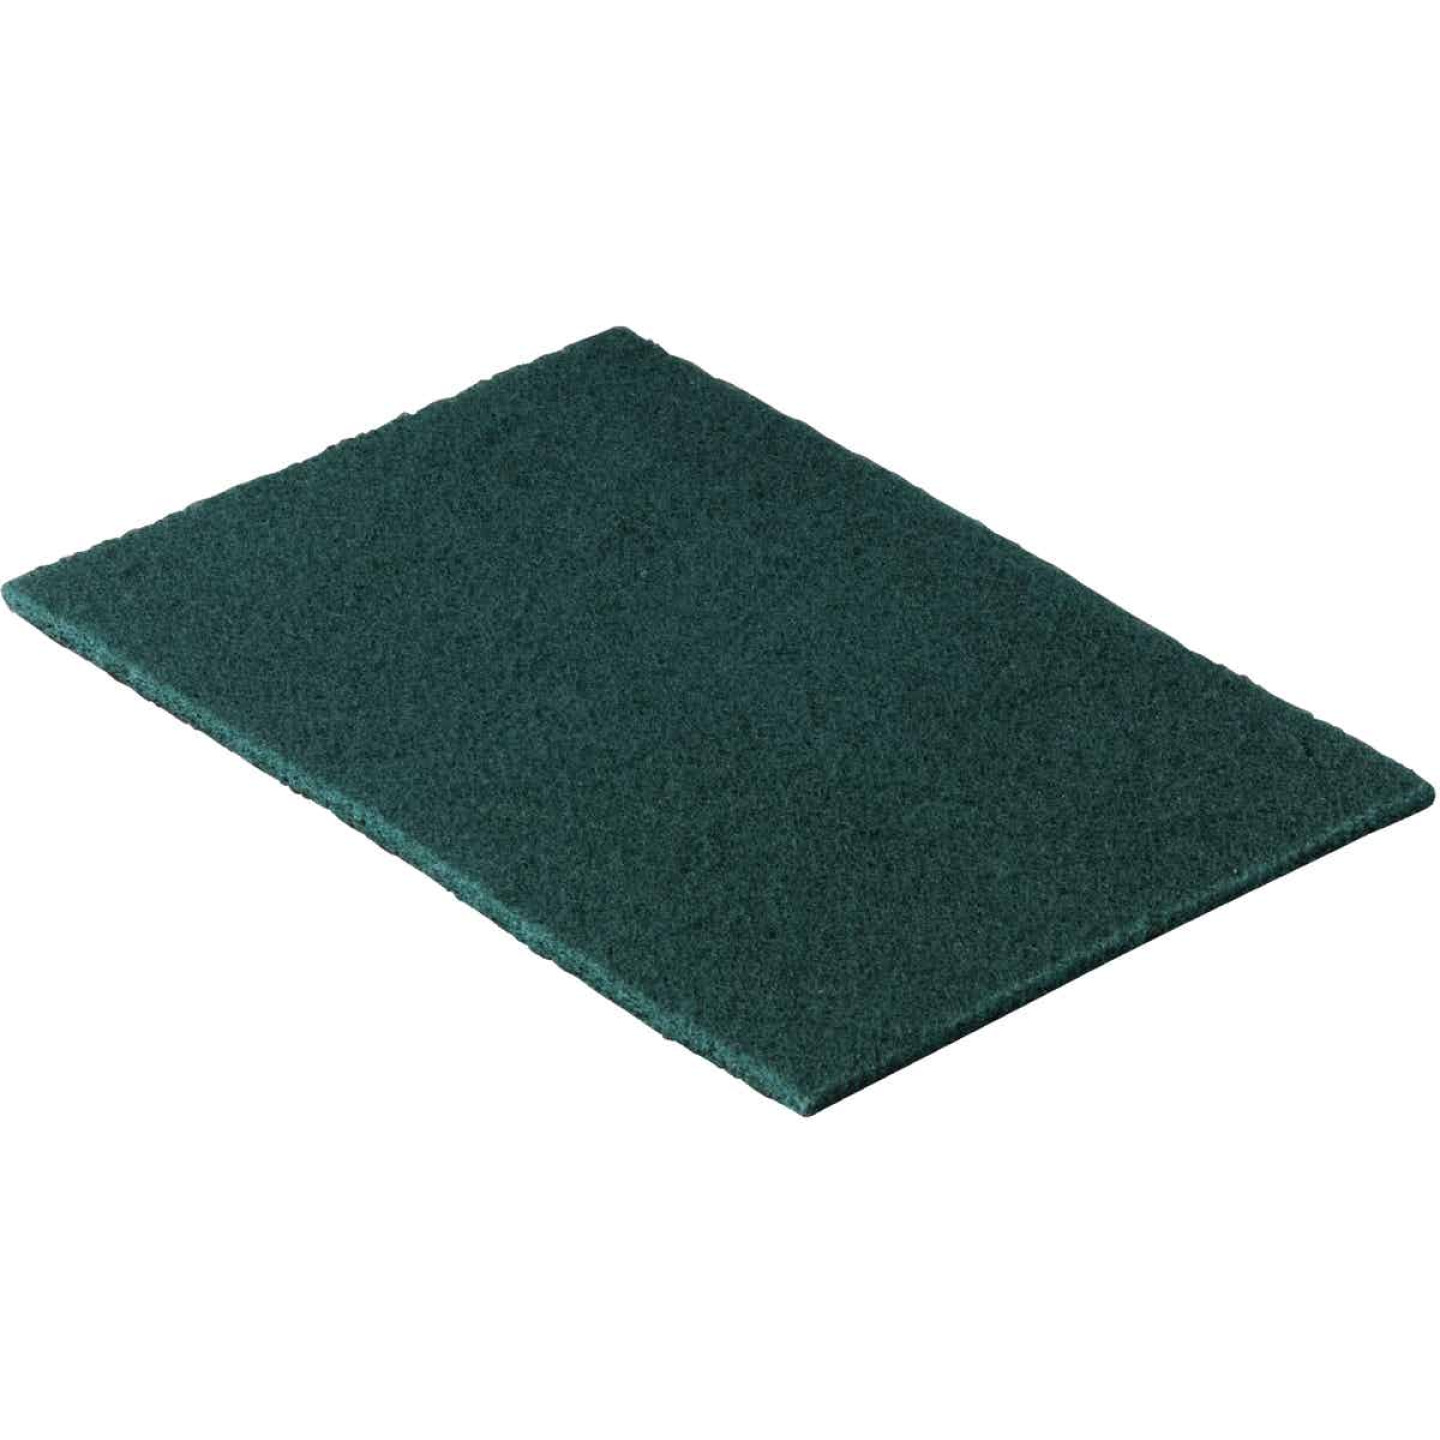 Scotch-Brite Heavy Duty Scouring Pad (20 Count) Image 1